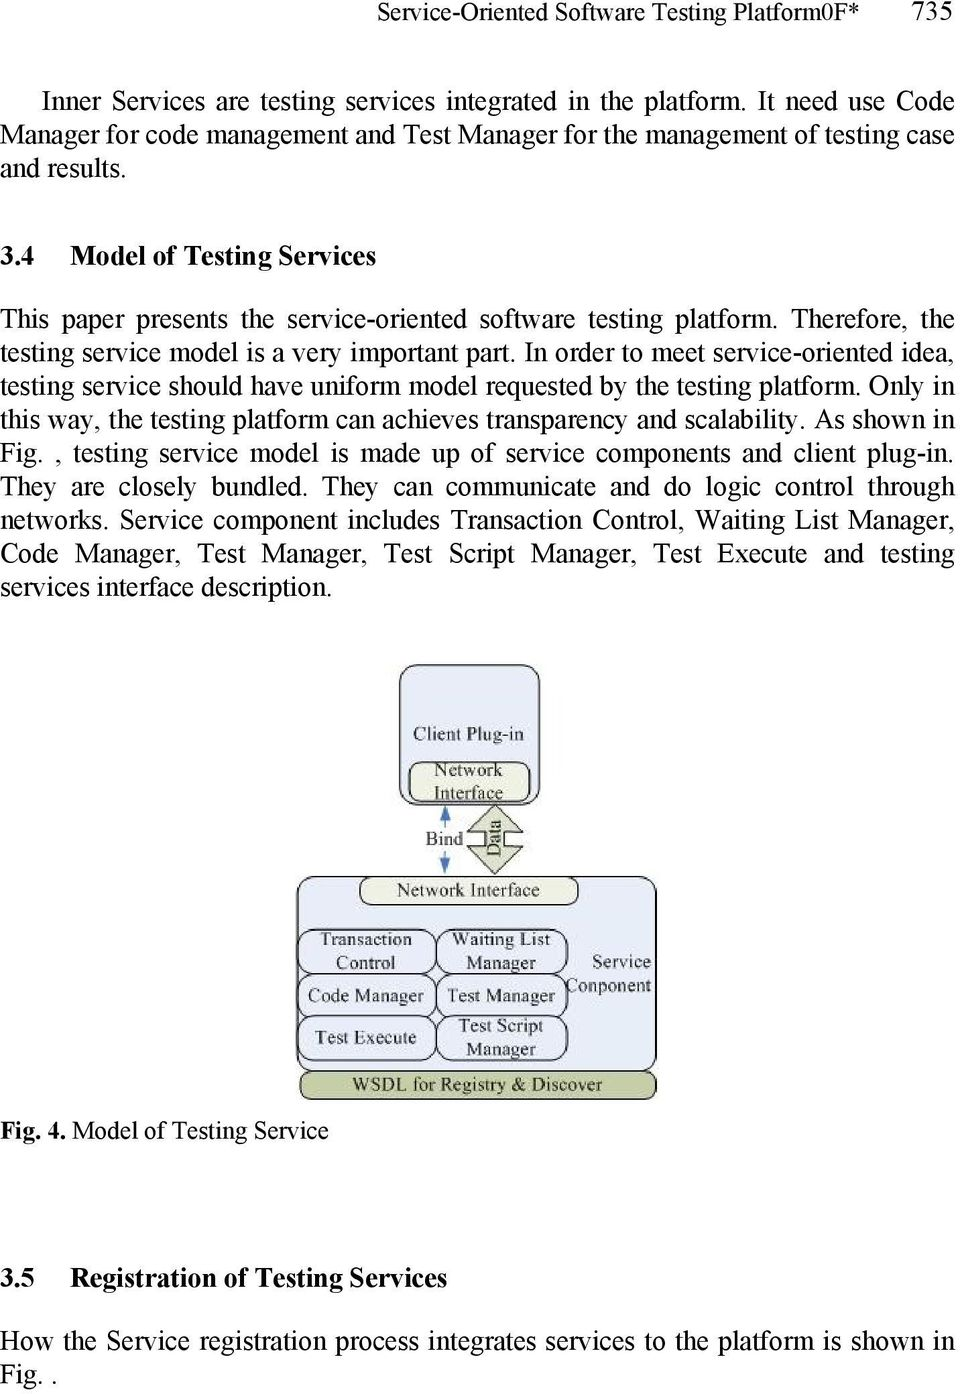 4 Model of Testing Services This paper presents the service-oriented software testing platform. Therefore, the testing service model is a very important part.